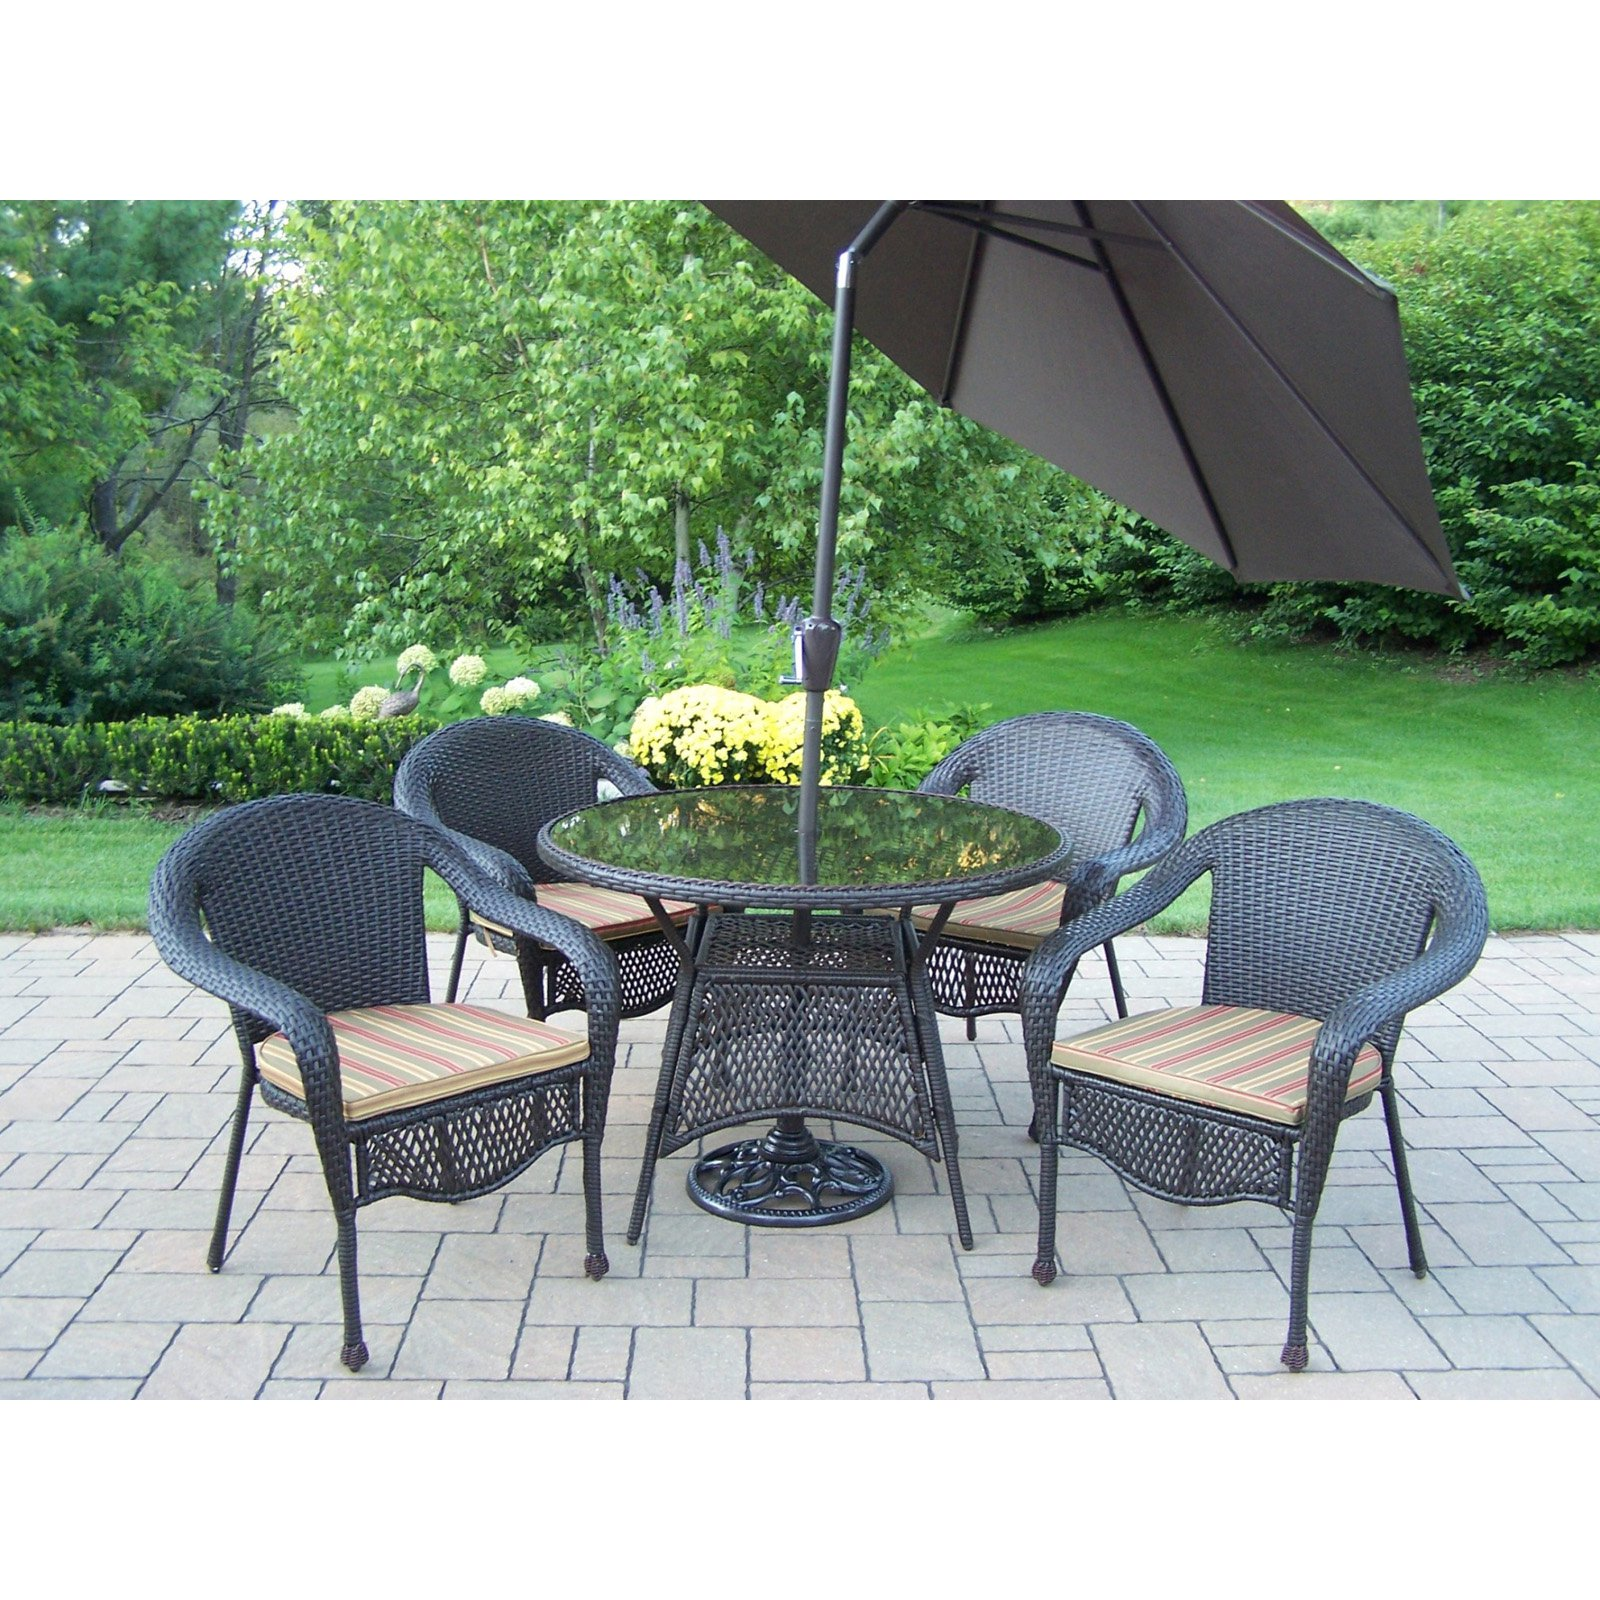 Oakland Living Elite All-Weather Wicker Patio Dining Set with Tilting Umbrella and Stand